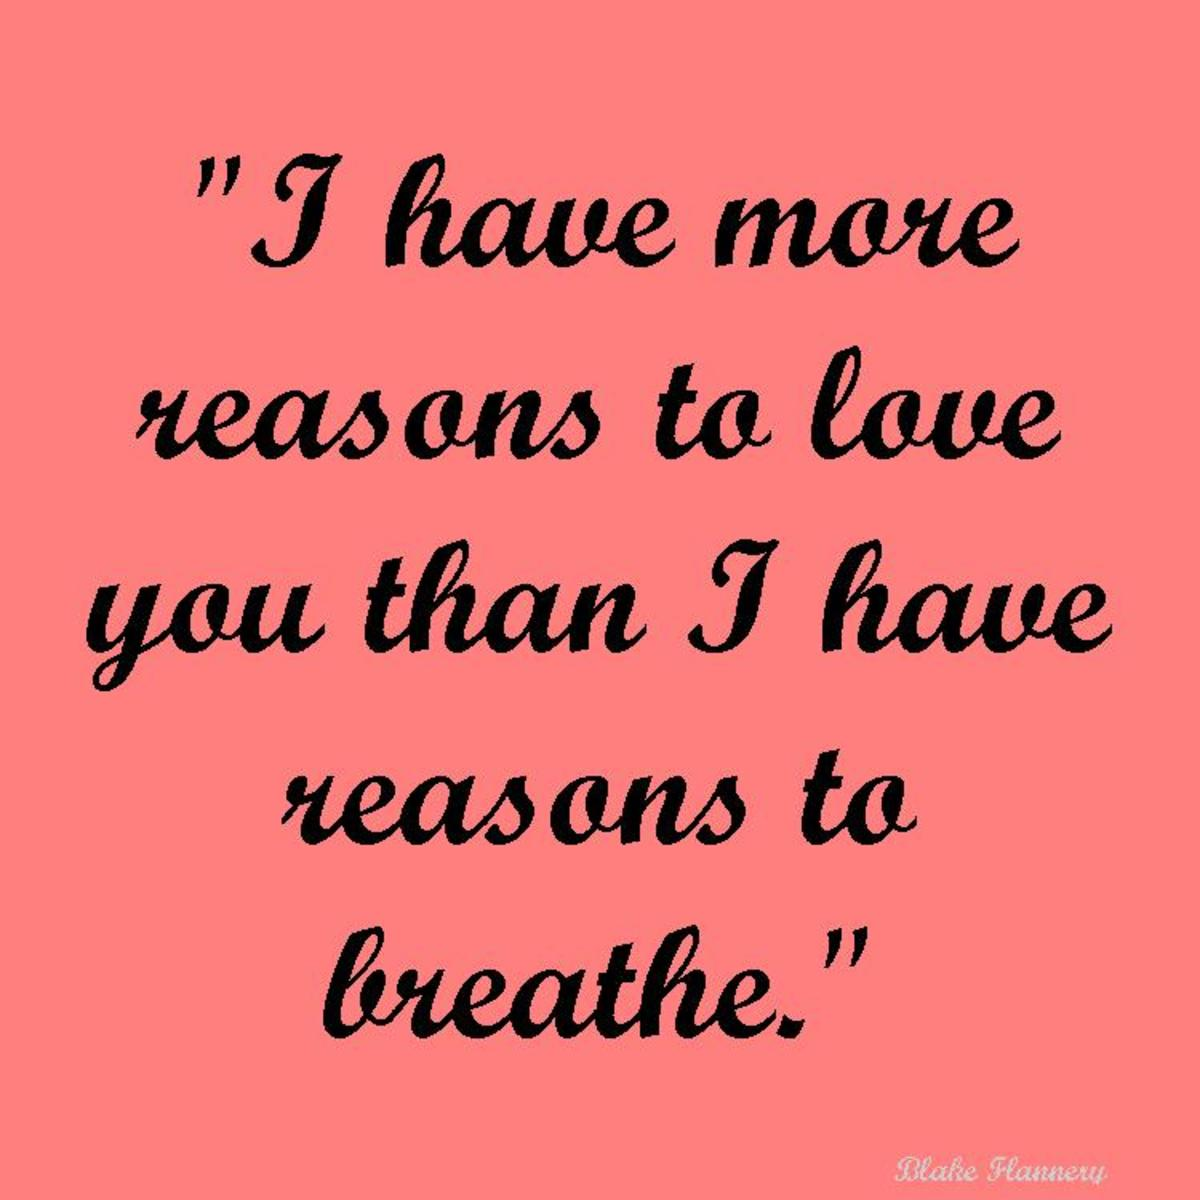 New Relationship Love Quotes: Love Messages And Quotes